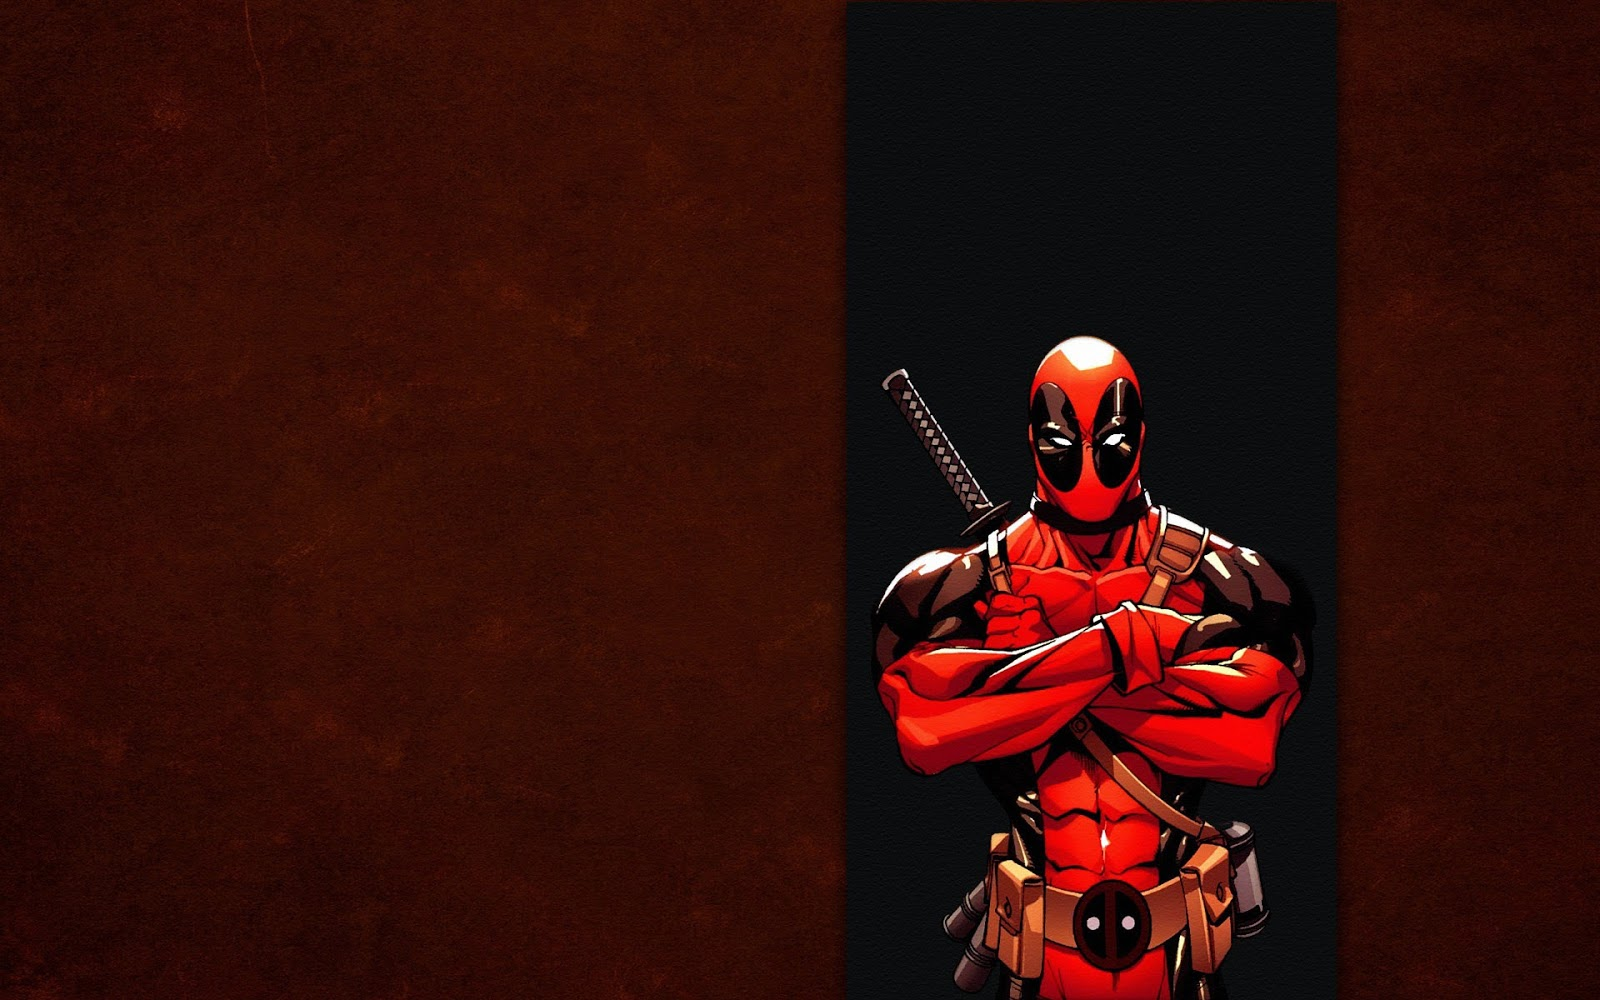 Wallpaper Hd Deadpool 7 Kumpulan Wallpaper Hd Keren